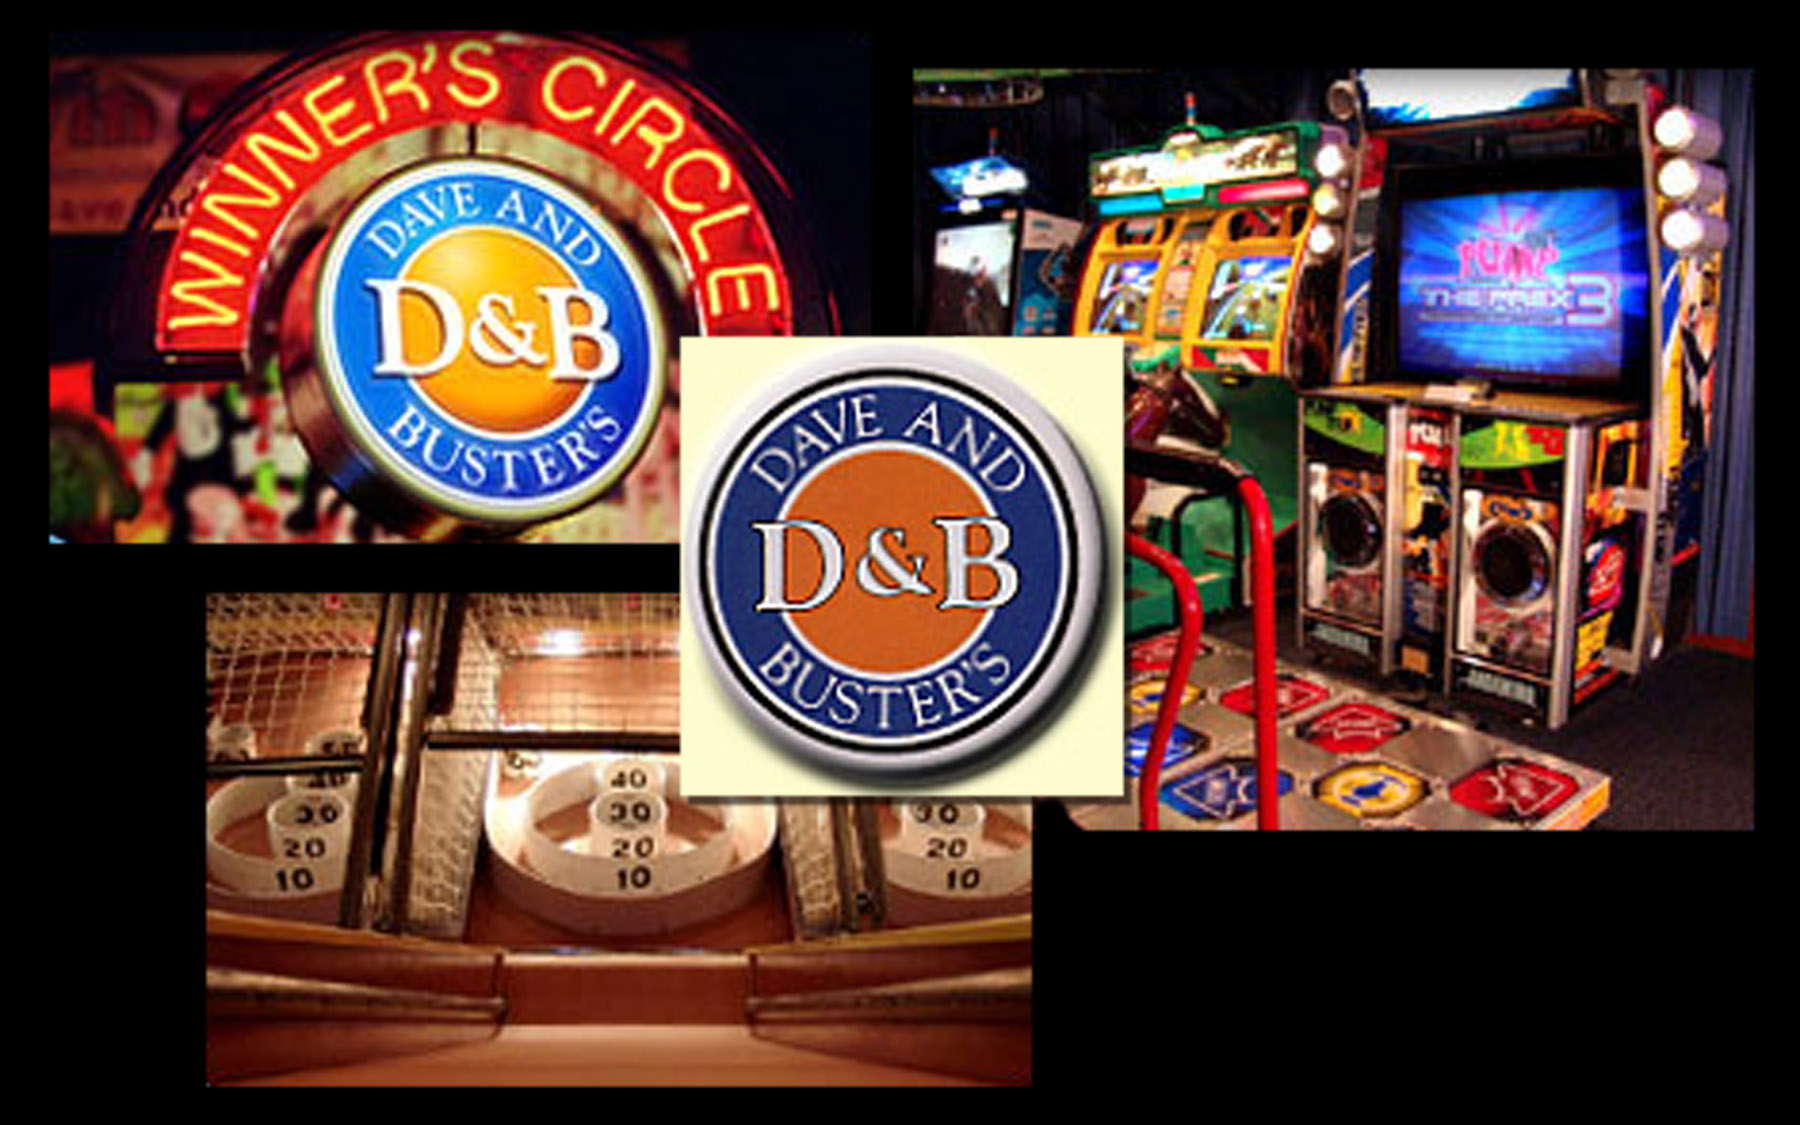 Dave & Buster's in Los Angeles, CA